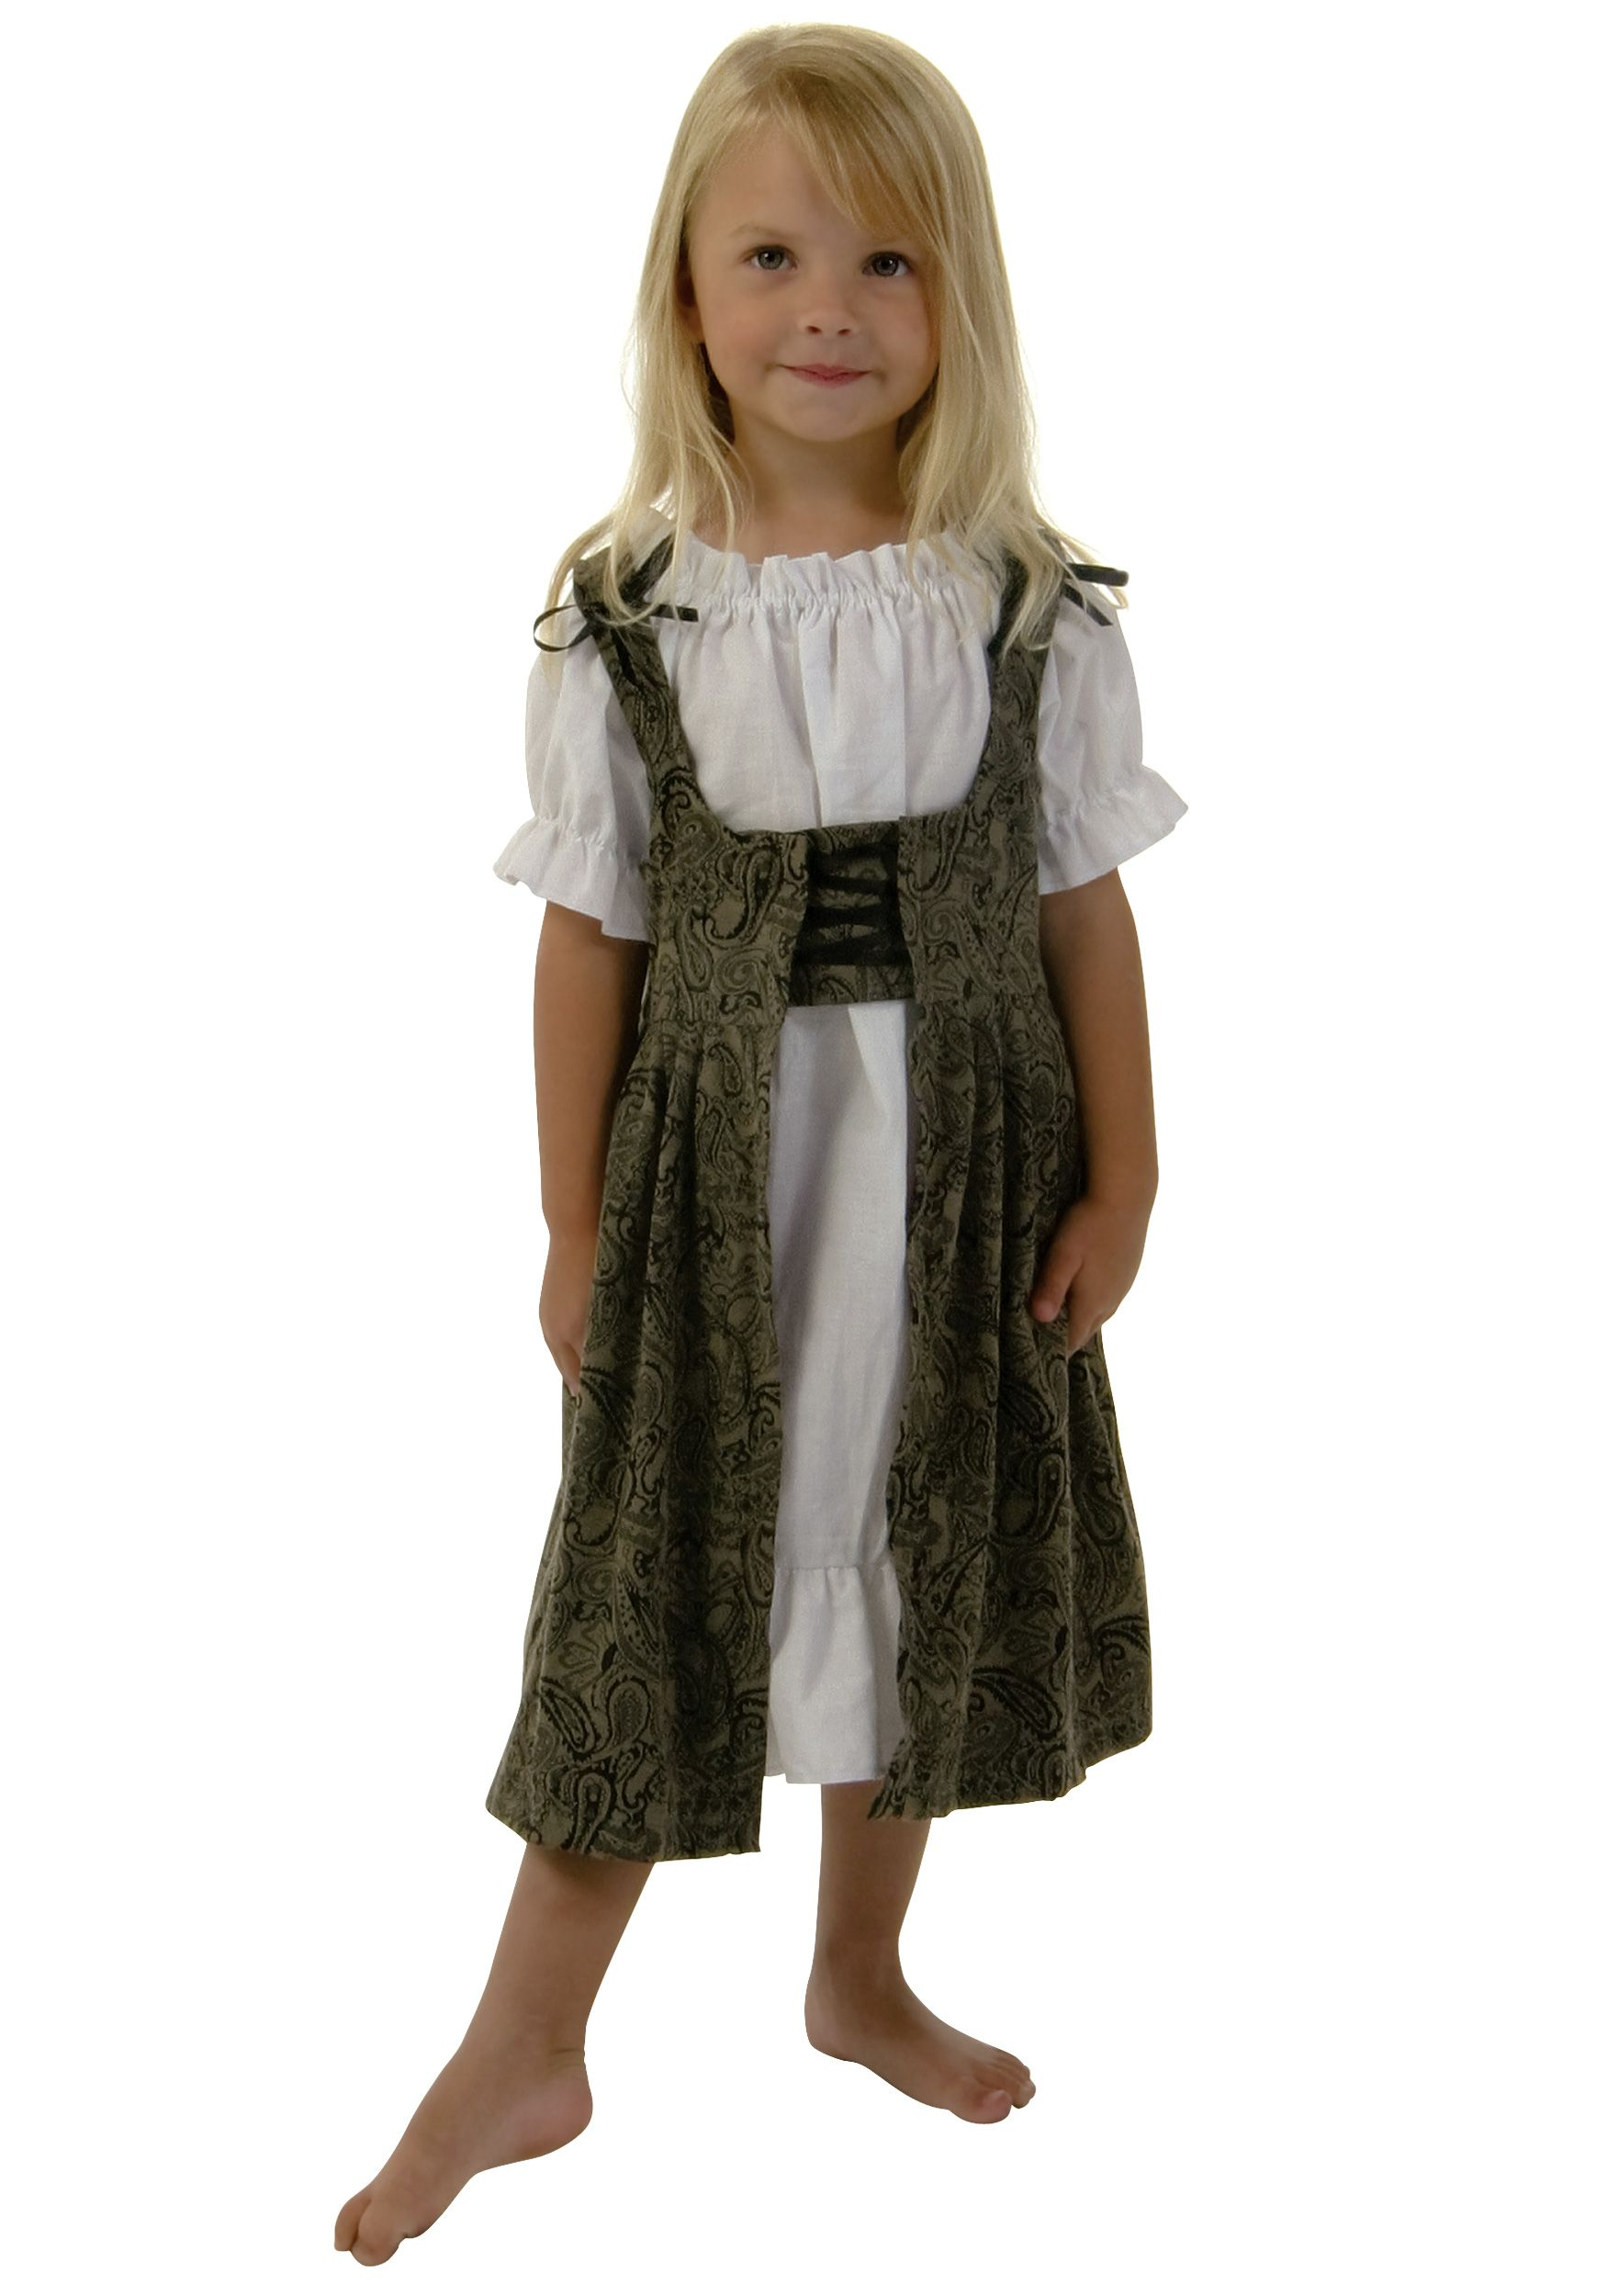 Image detail for -Girls Toddler Medieval Dress - Kids Medieval Halloween Costumes  sc 1 st  Pinterest & Child Renaissance Halloween Costumes | Things to make | Pinterest ...